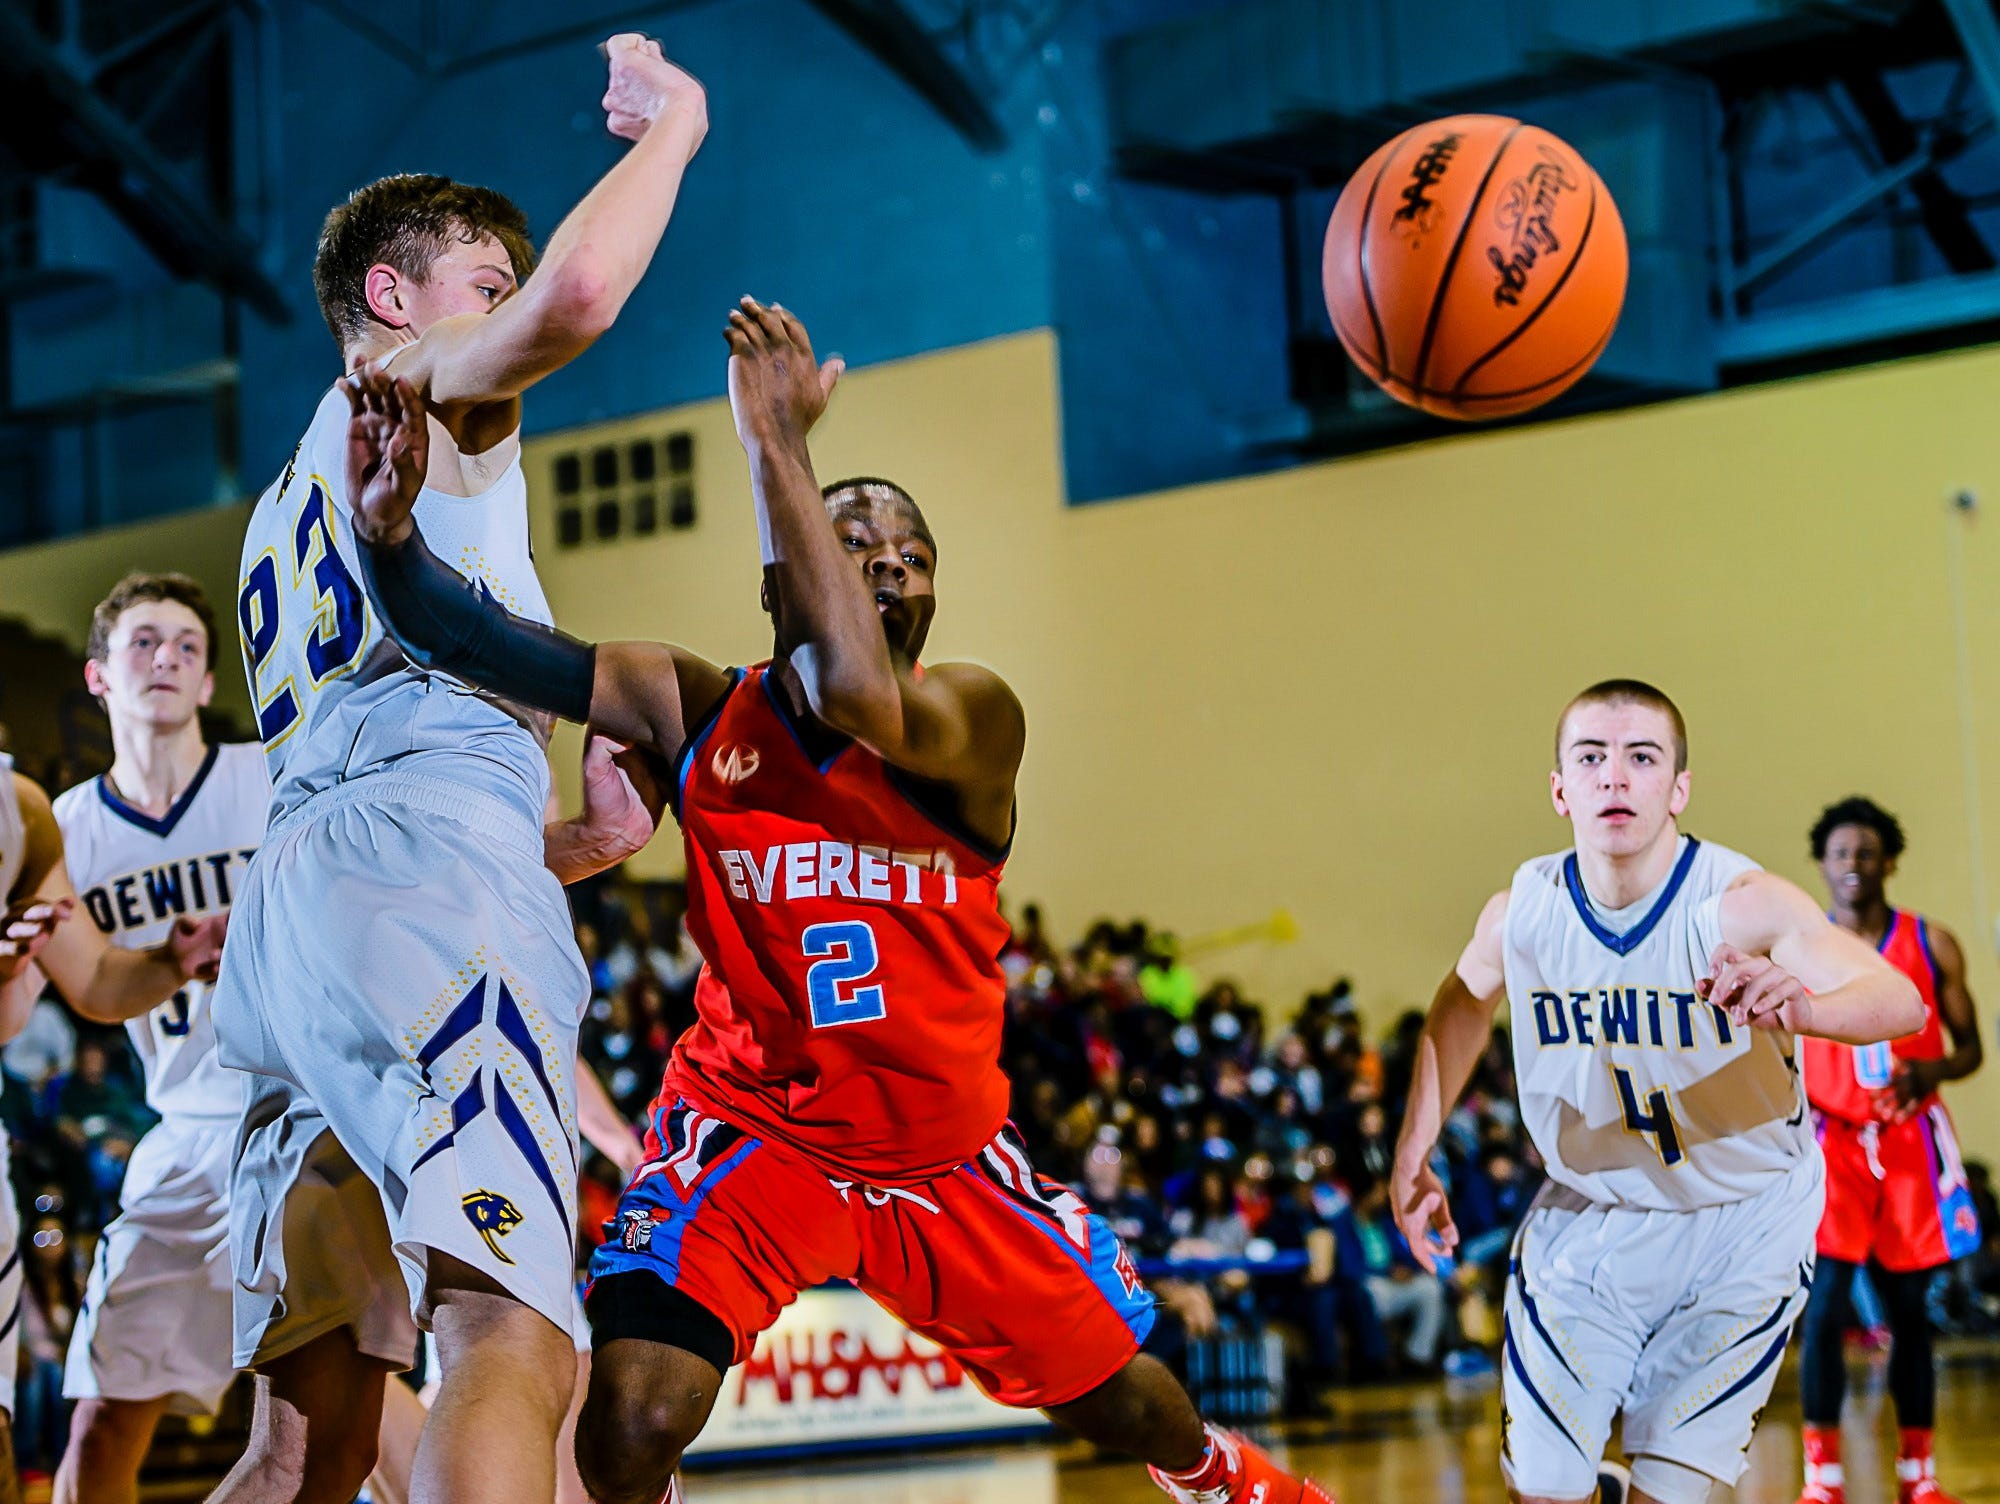 Nyreel Powell ,2, of Everett is fouled by Eddie Daley ,23, of DeWitt with 1:08 remaining in their Class A district semifinal game and DeWitt leading 46-45 Wednesday March 8, 2017 at Don Johnson Fieldhouse in Lansing. Powell would sink 1 of 2 freethrows to tie the game. KEVIN W. FOWLER PHOTO